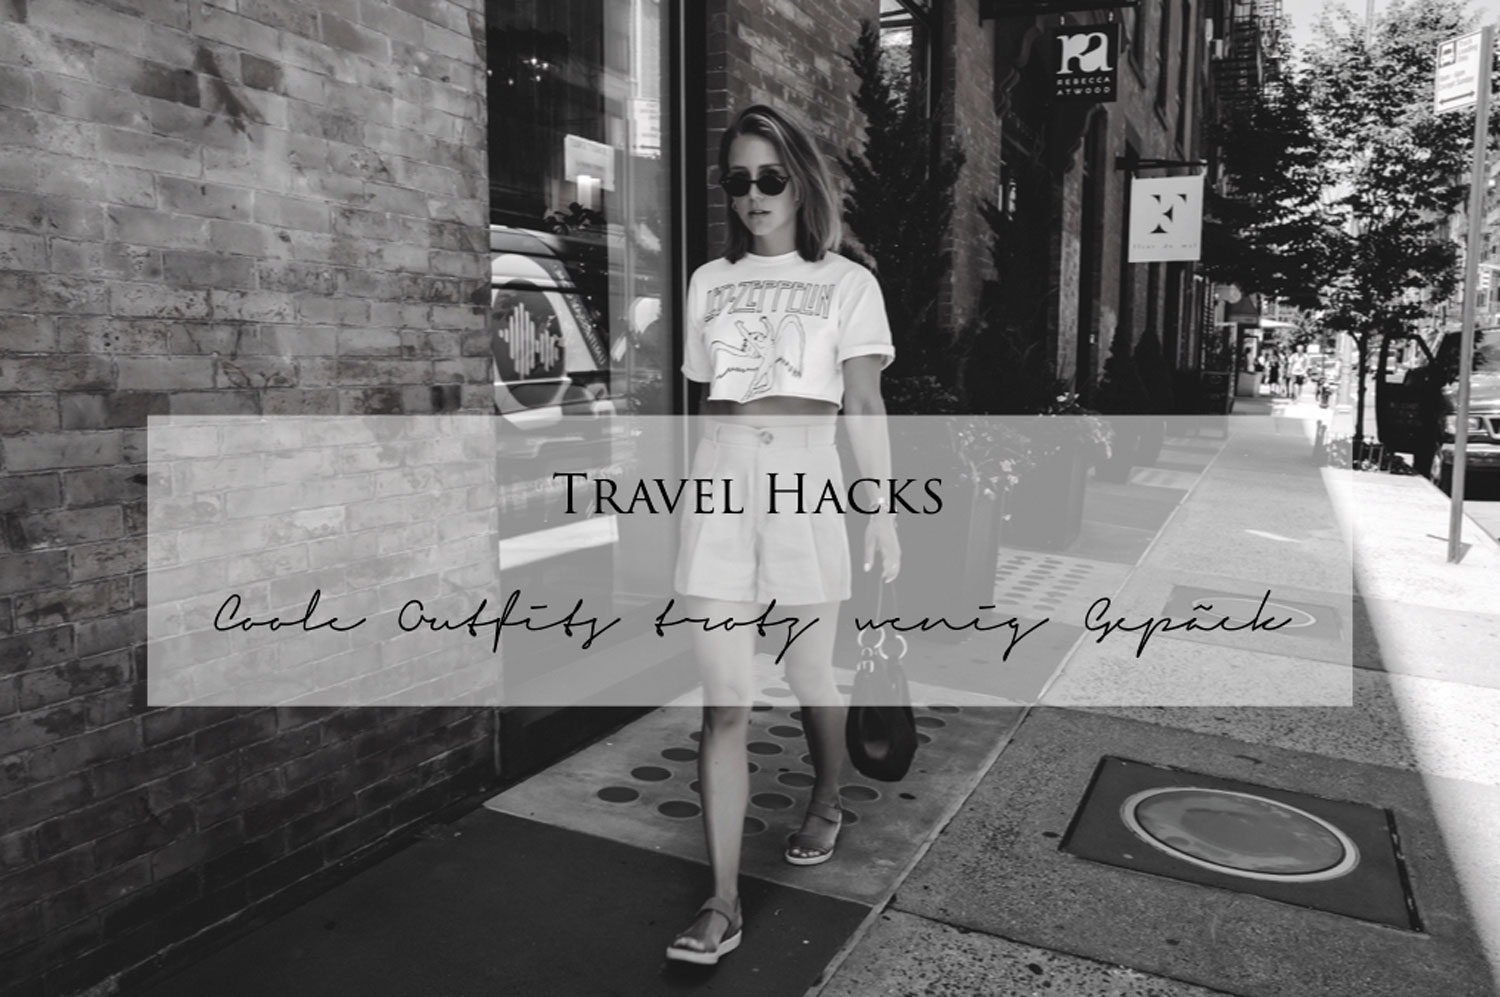 Travel_hacks-New-York